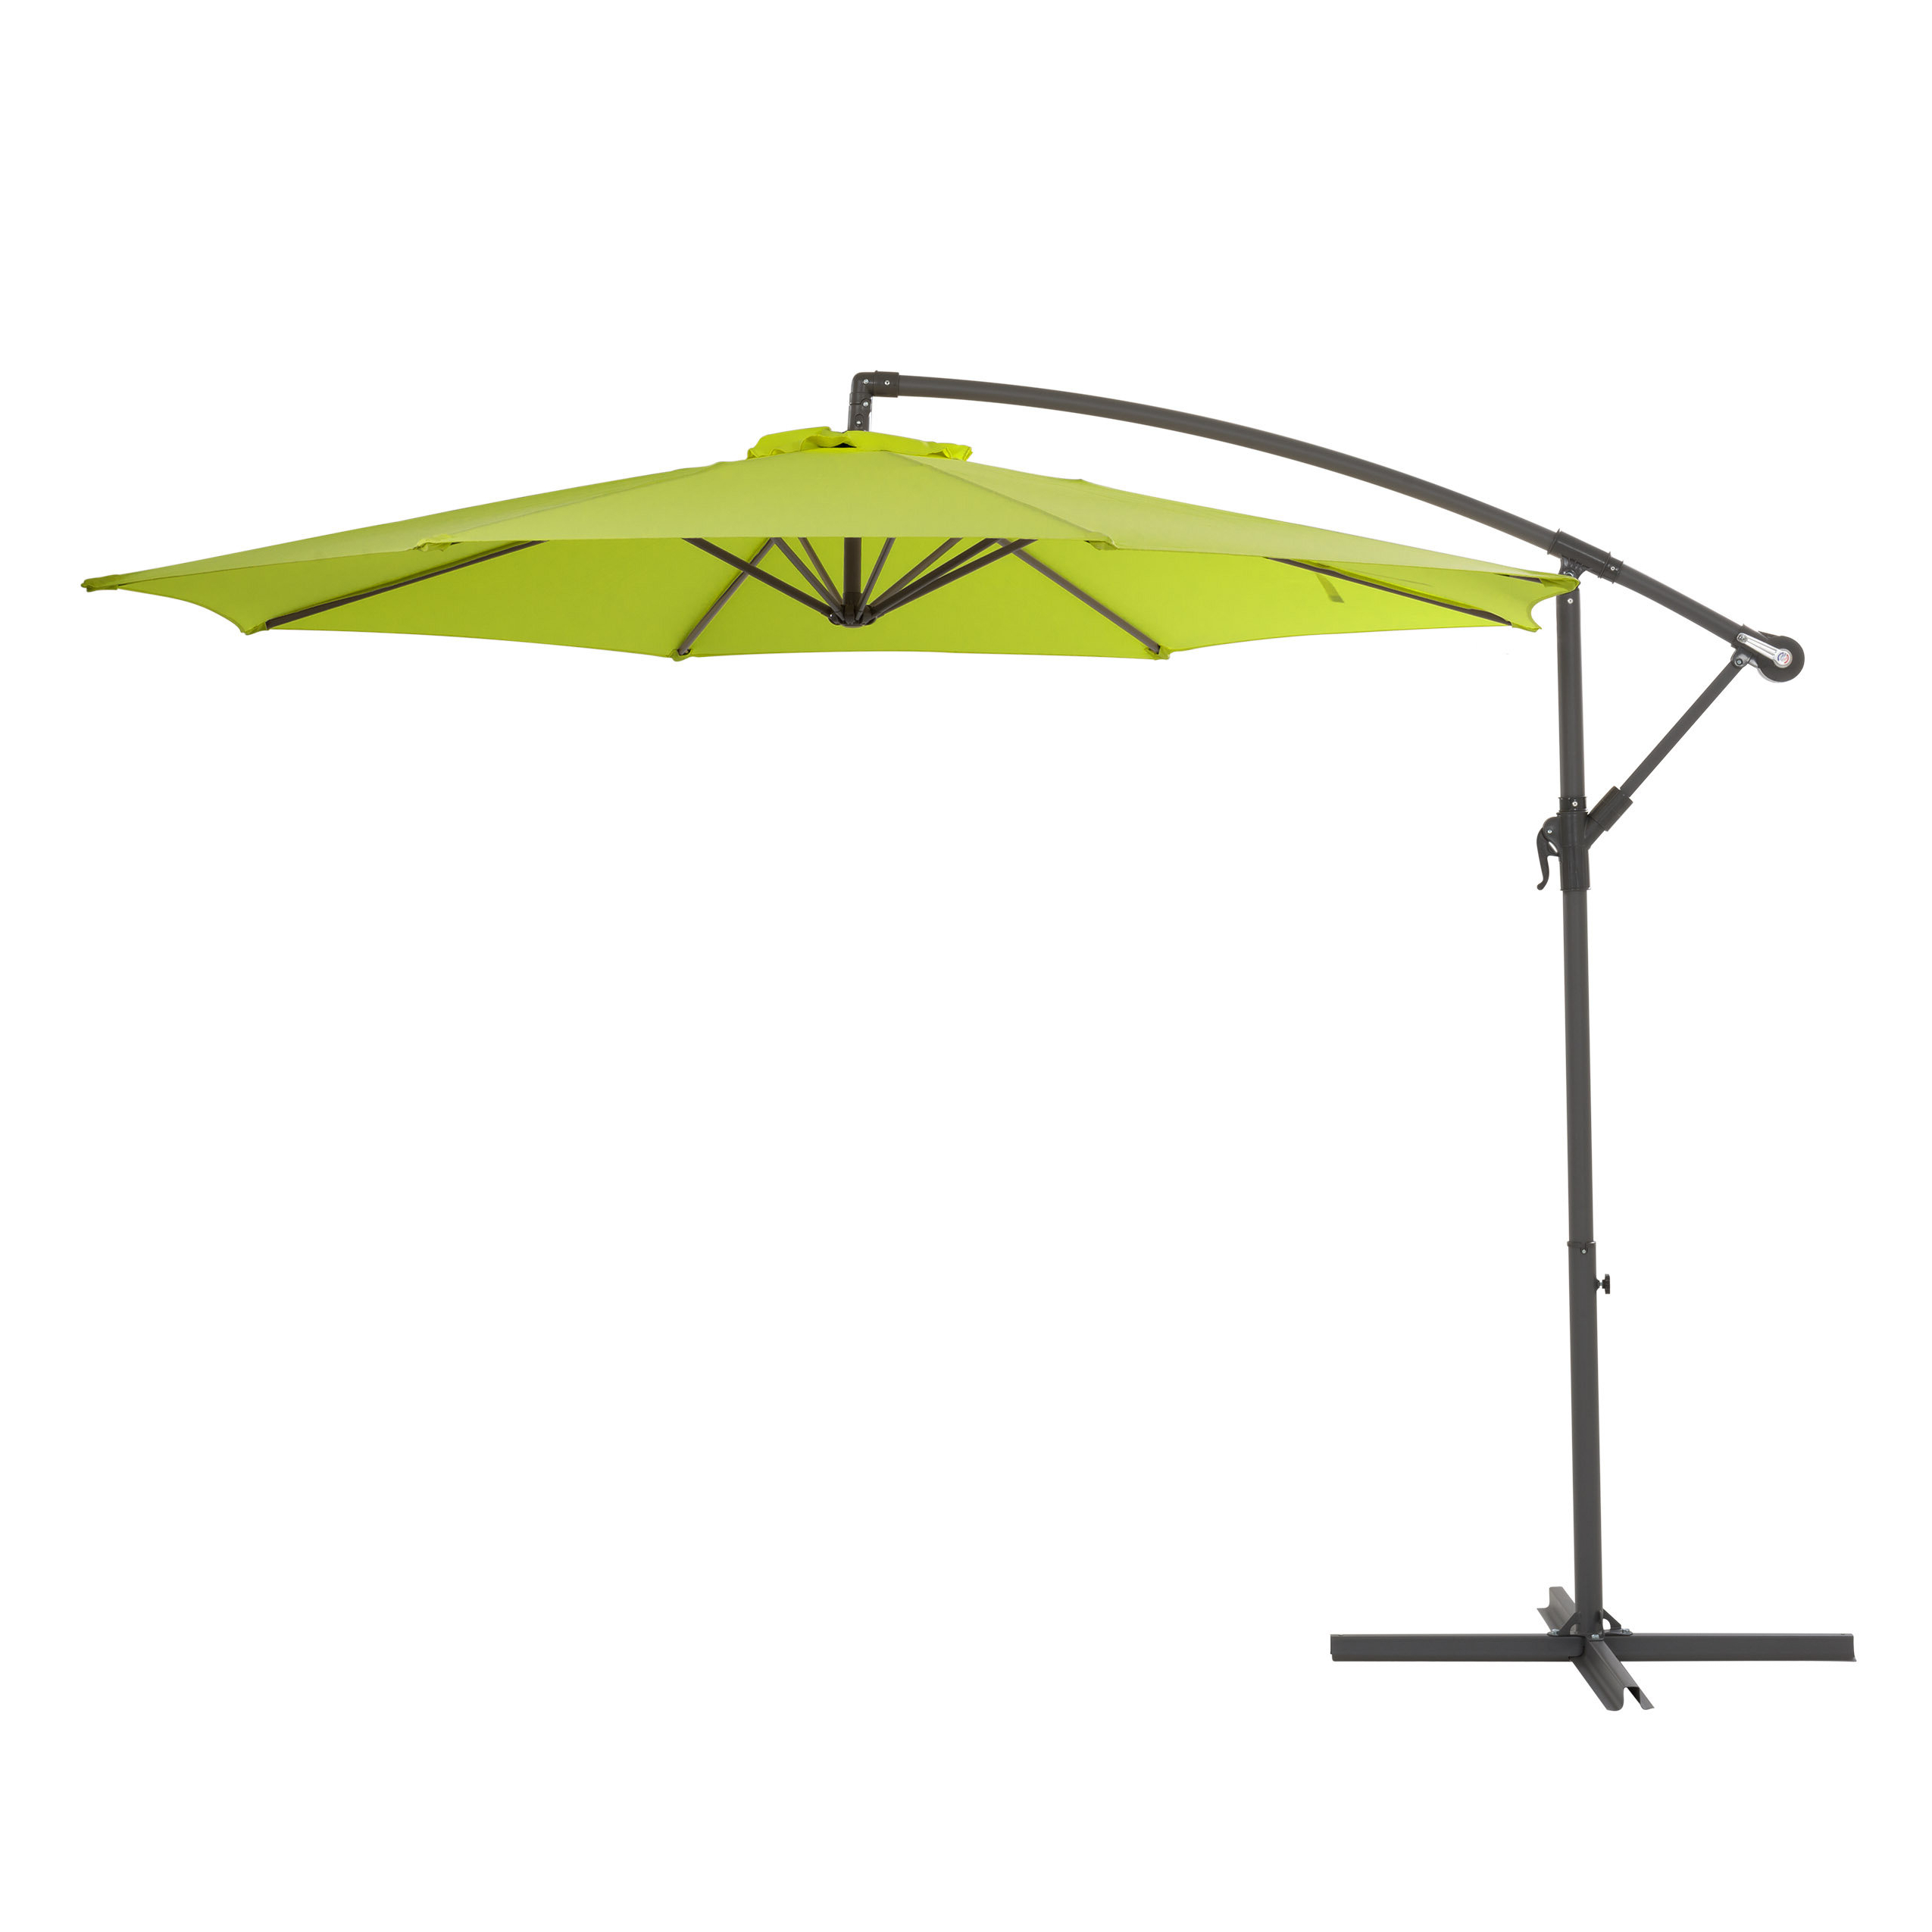 Muhammad Fullerton Cantilever Umbrellas For Most Up To Date Freda 9.5' Cantilever Umbrella (Gallery 6 of 20)